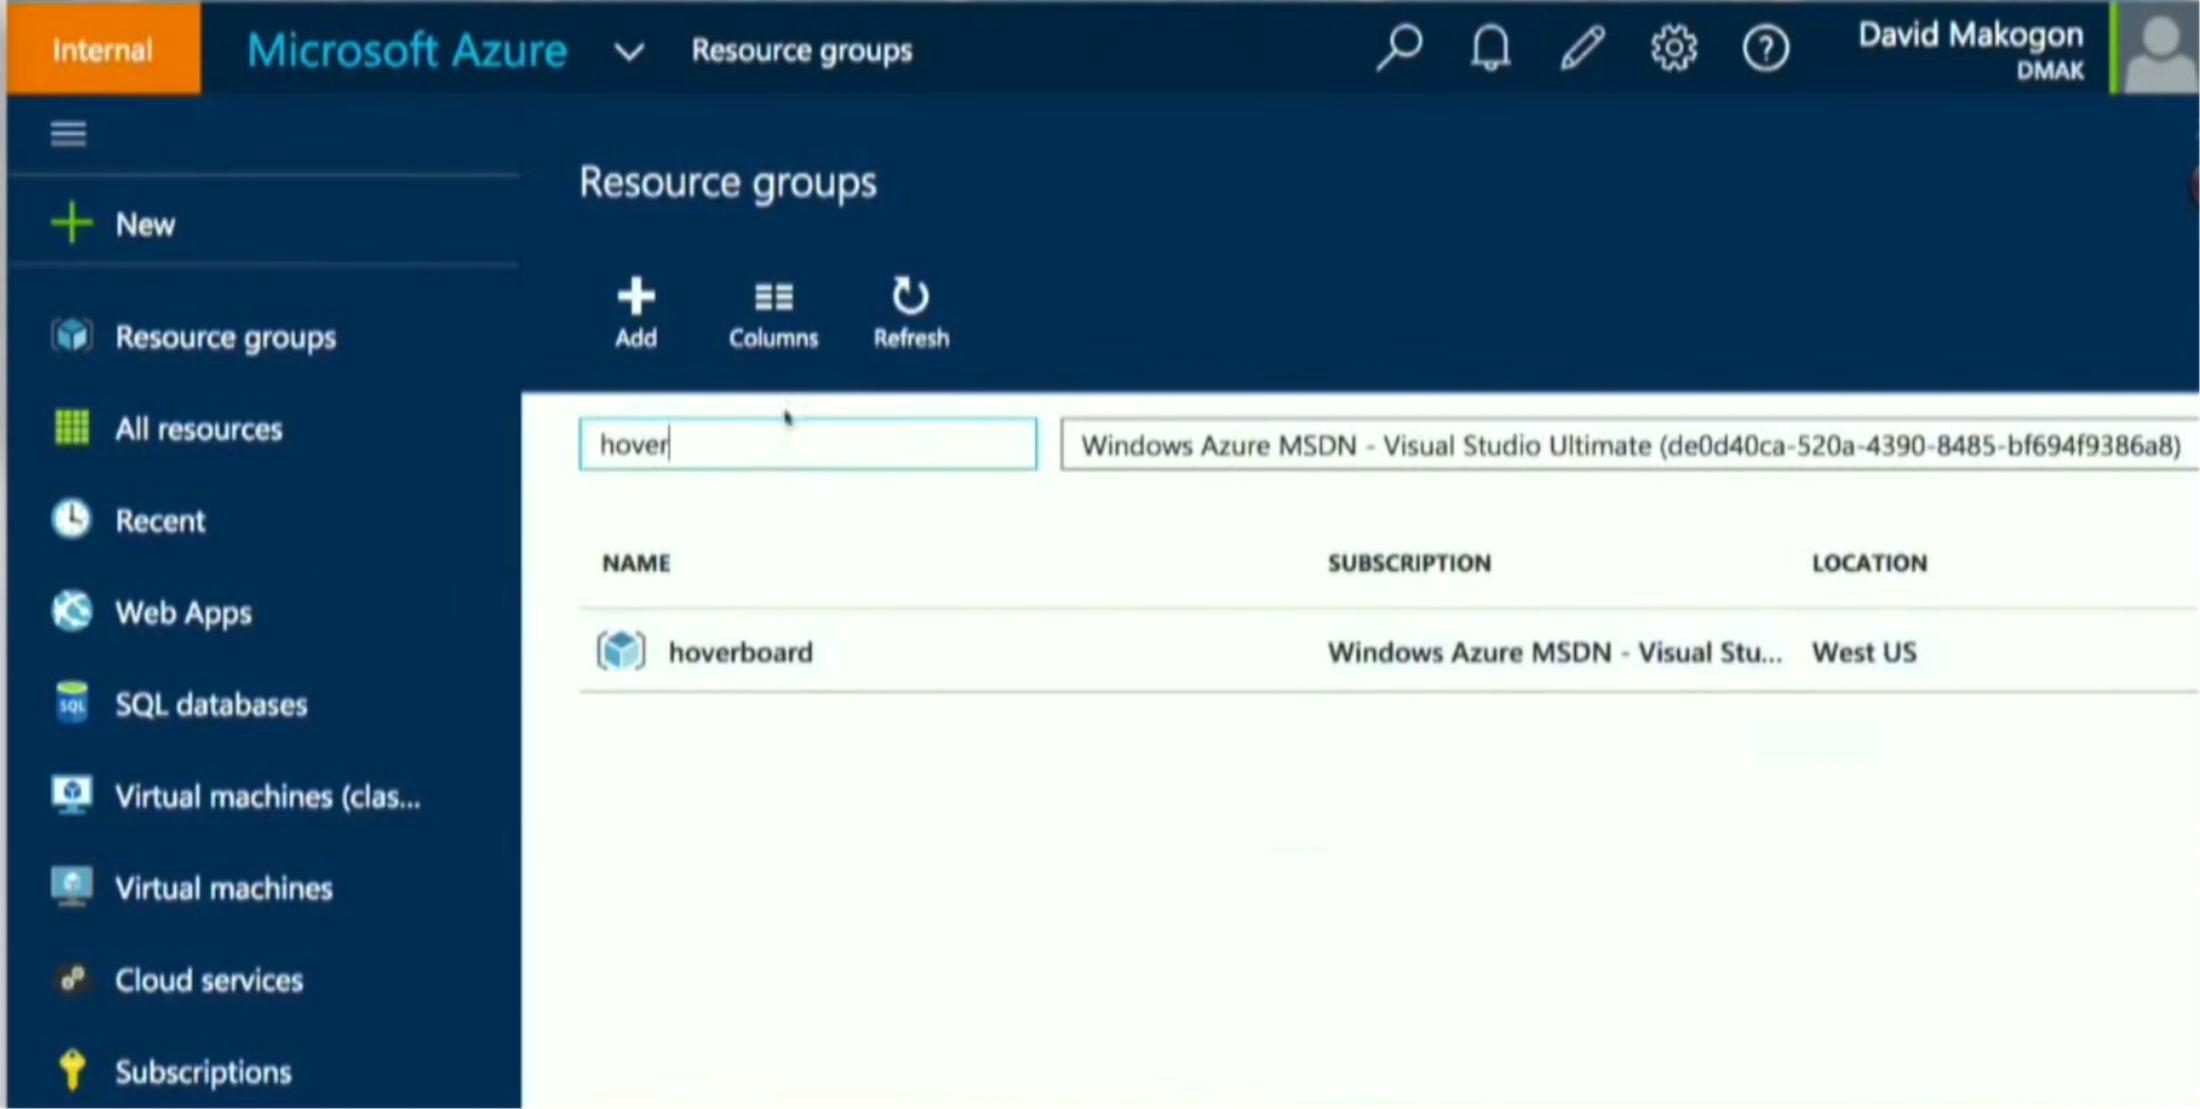 The Resource Group Navigation in Microsoft Azure